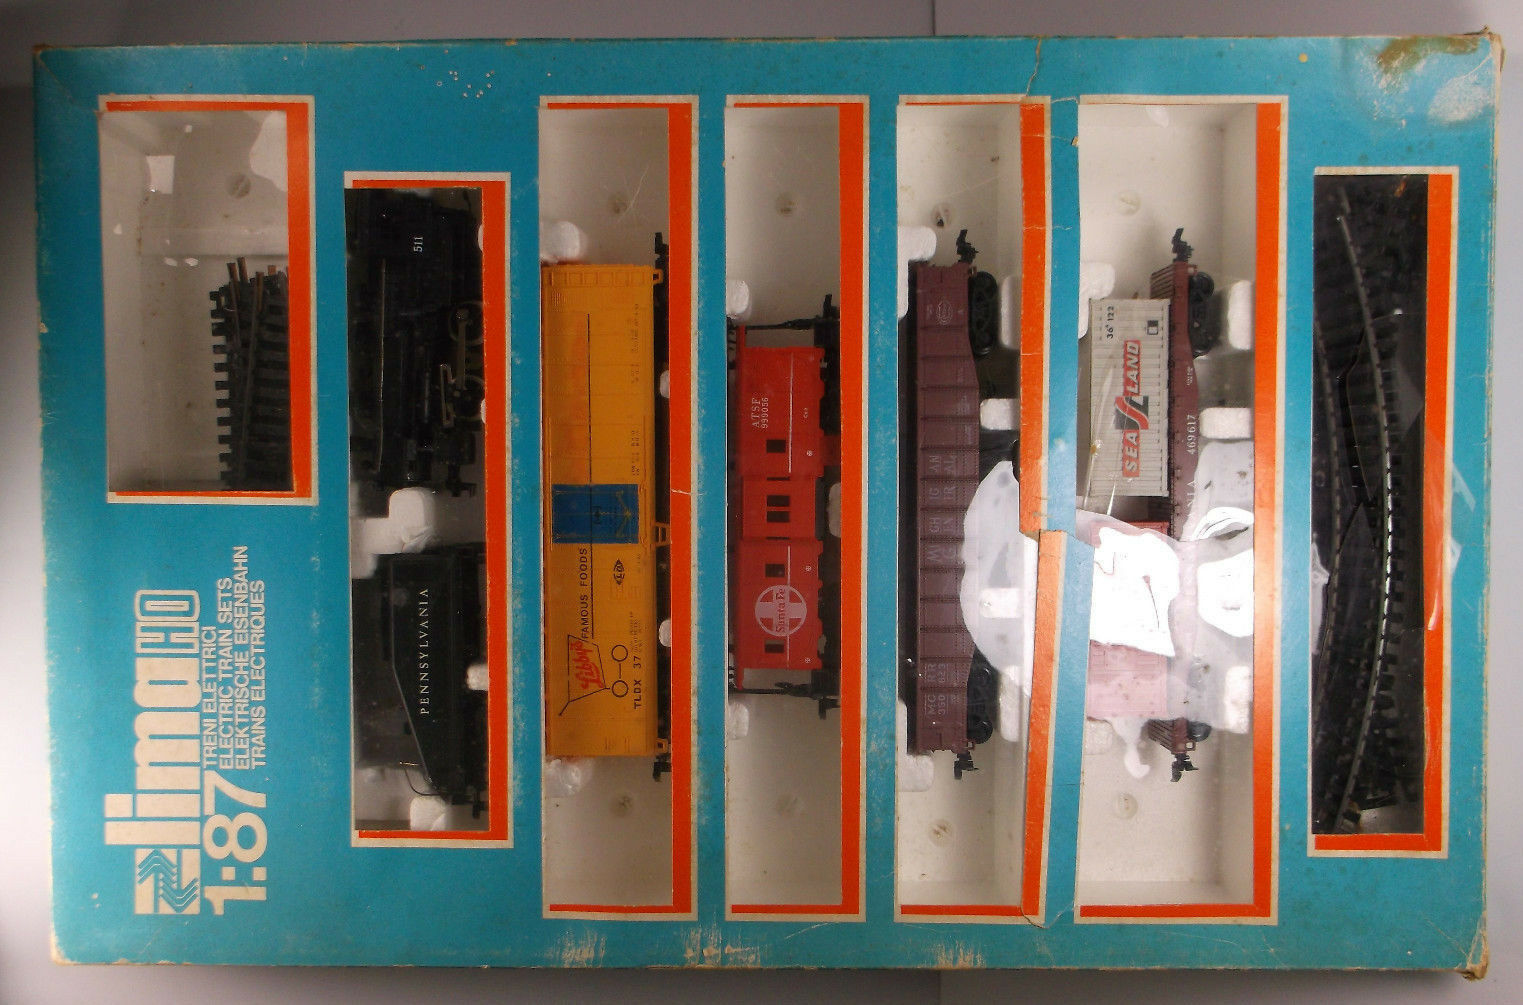 Vintage Rare 1 87 Lima HO Train Set in box 1970s made in